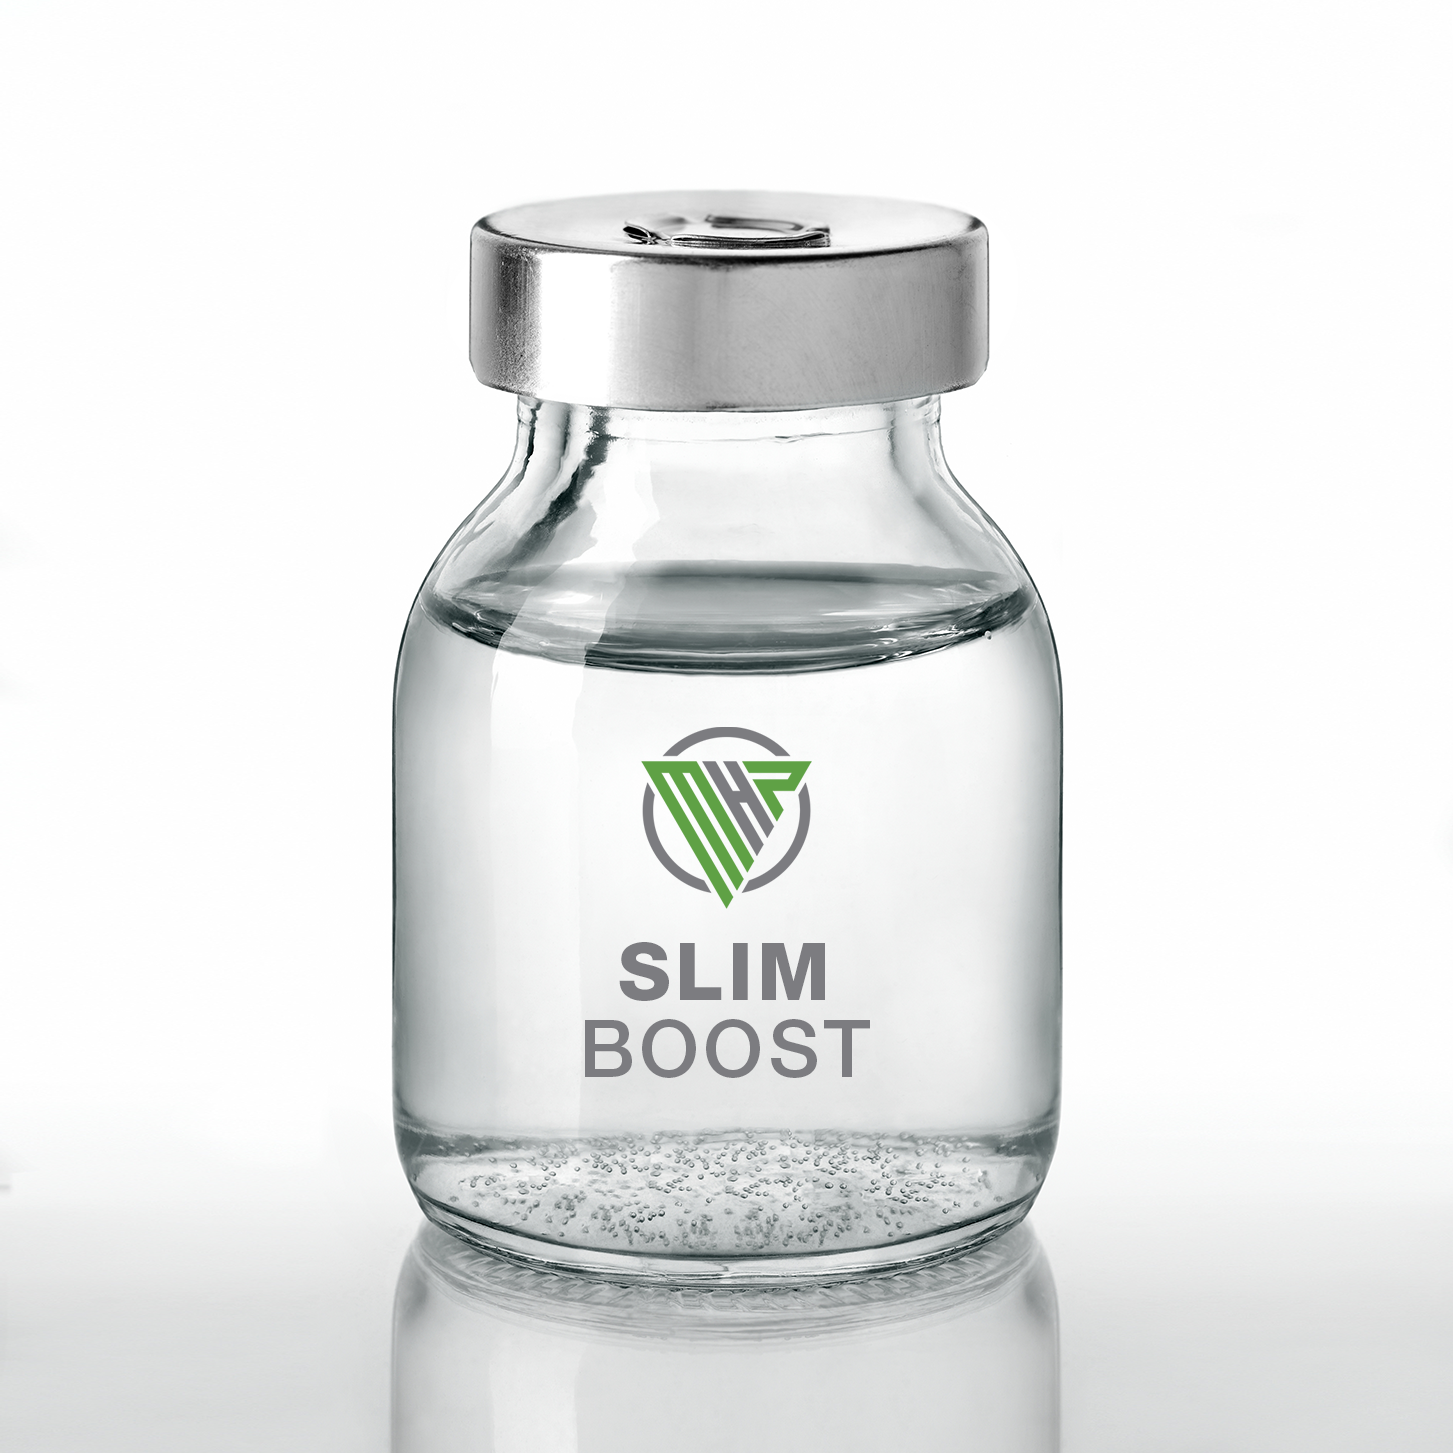 SLIM BOOST - A special combination fat burning lipotropics and powerful antioxidants that help the body turn fat into energy.